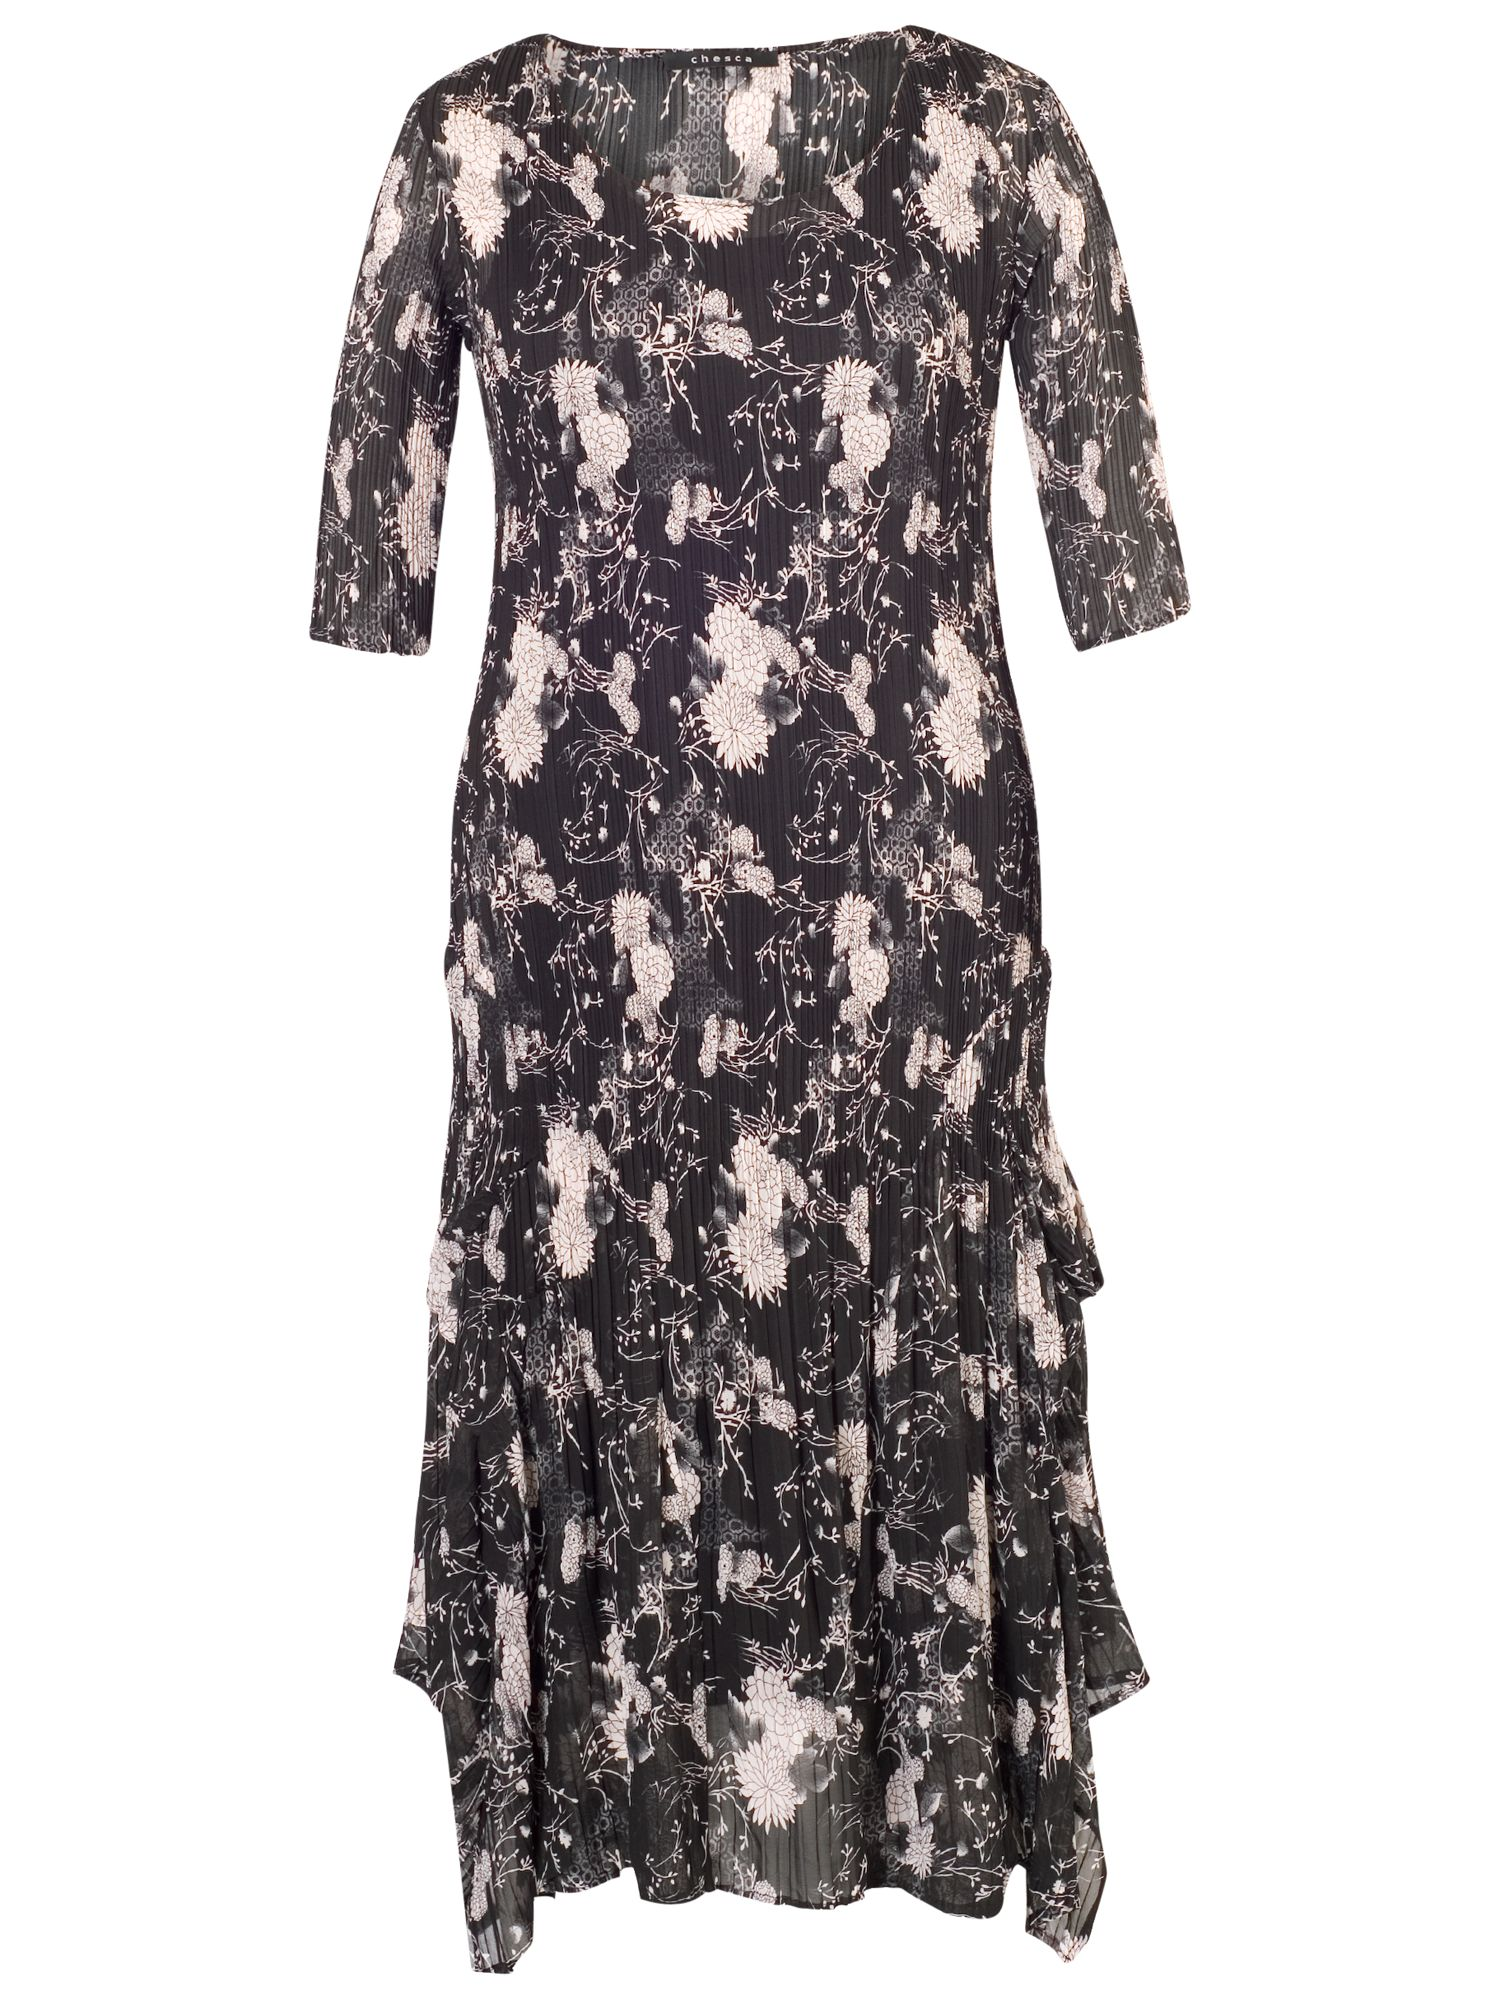 chesca floral print crush pleat layered dress black/heather, chesca, floral, print, crush, pleat, layered, dress, black/heather, 12-14|24-26|20-22|16-18, women, plus size, womens dresses, gifts, wedding, wedding clothing, mother of the bride, female guests, 1807923